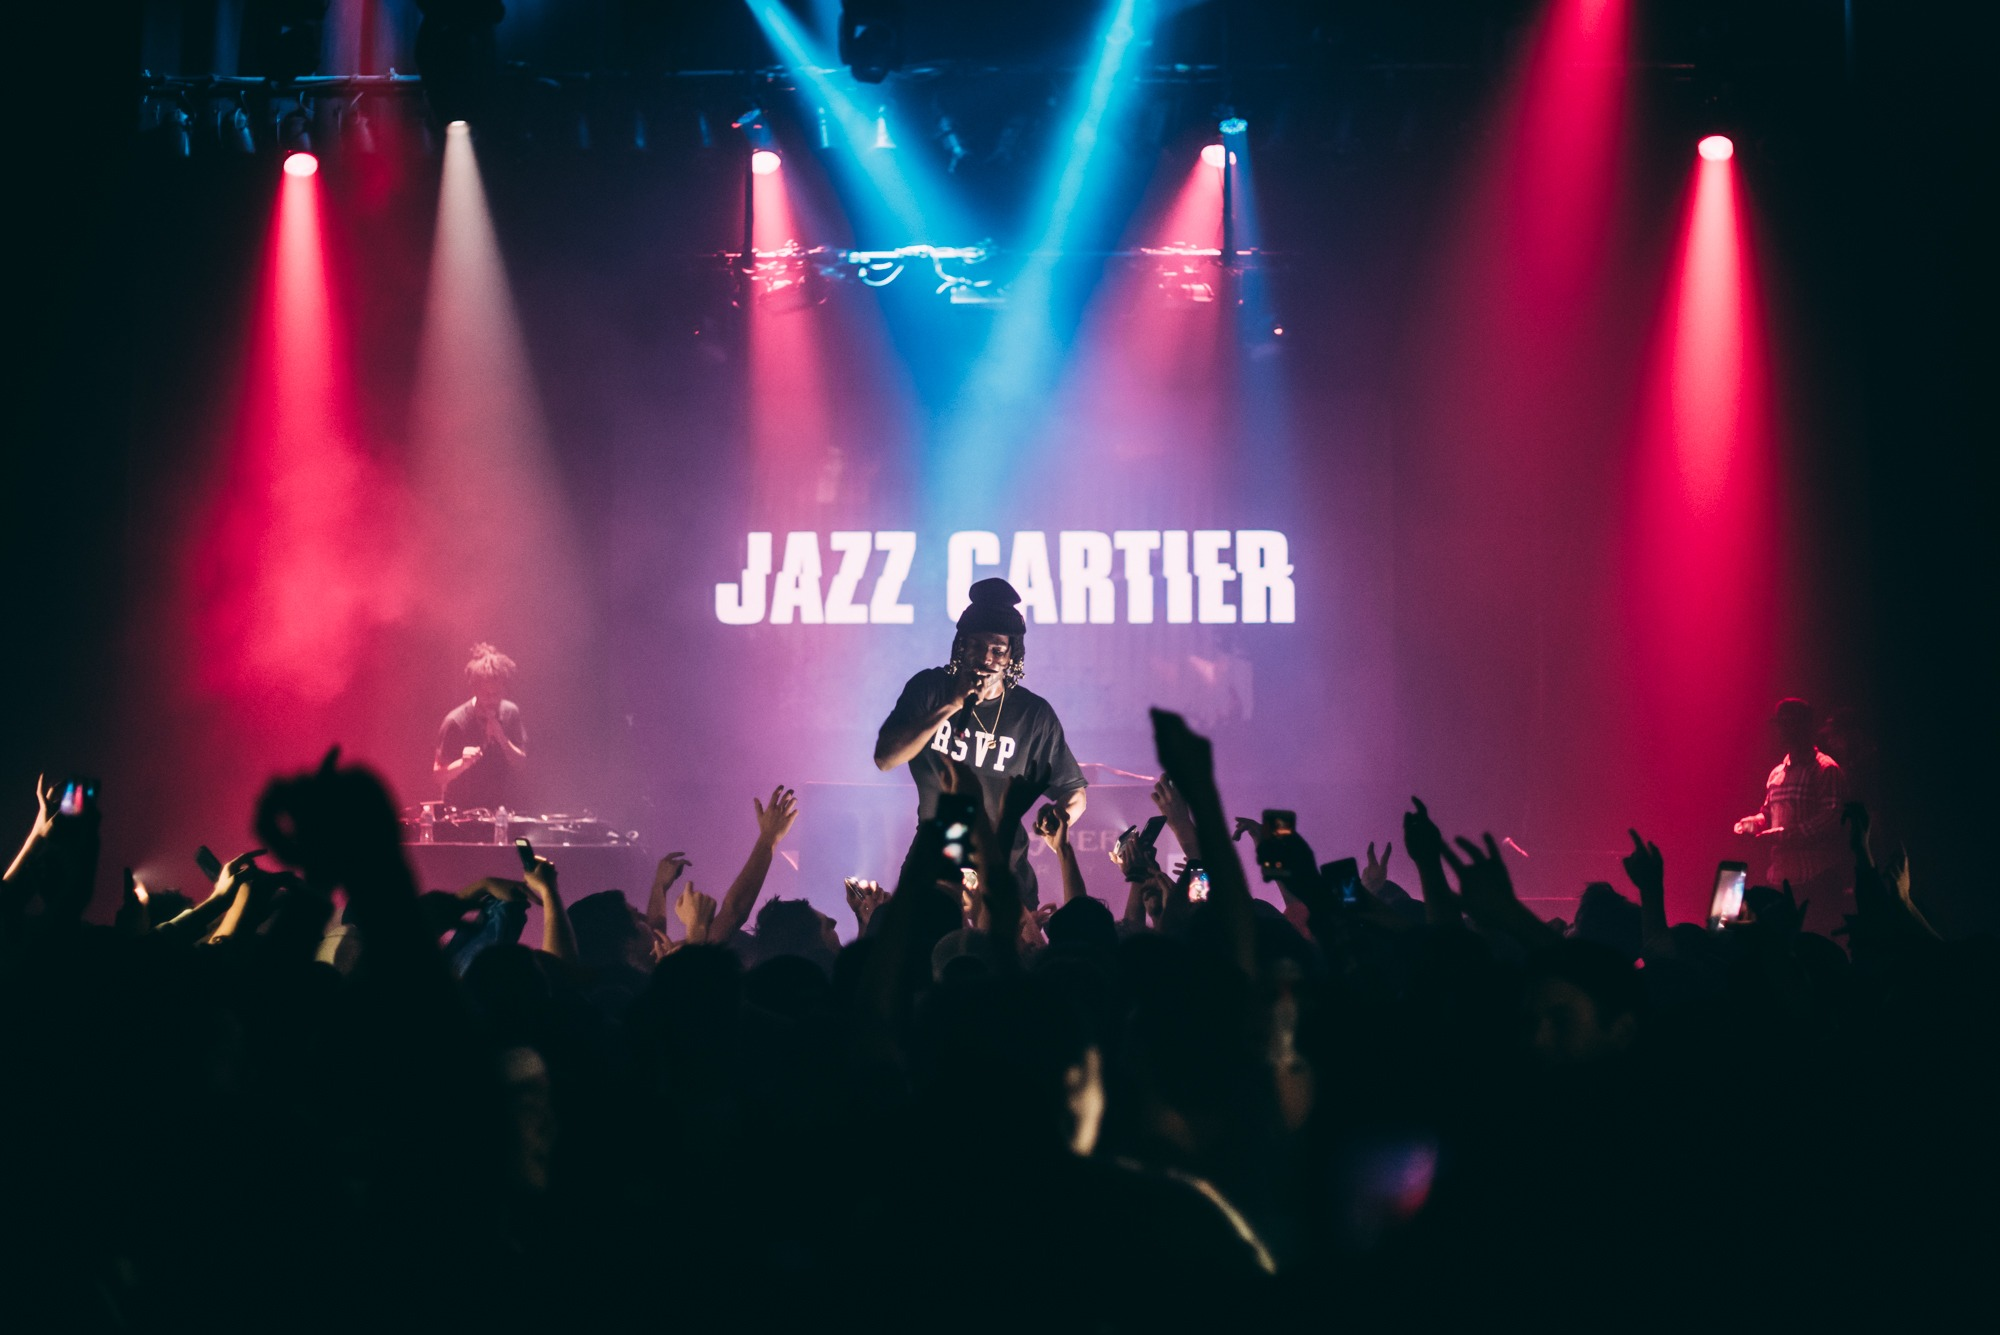 Jazz Cartier/Brandon Artis Photography